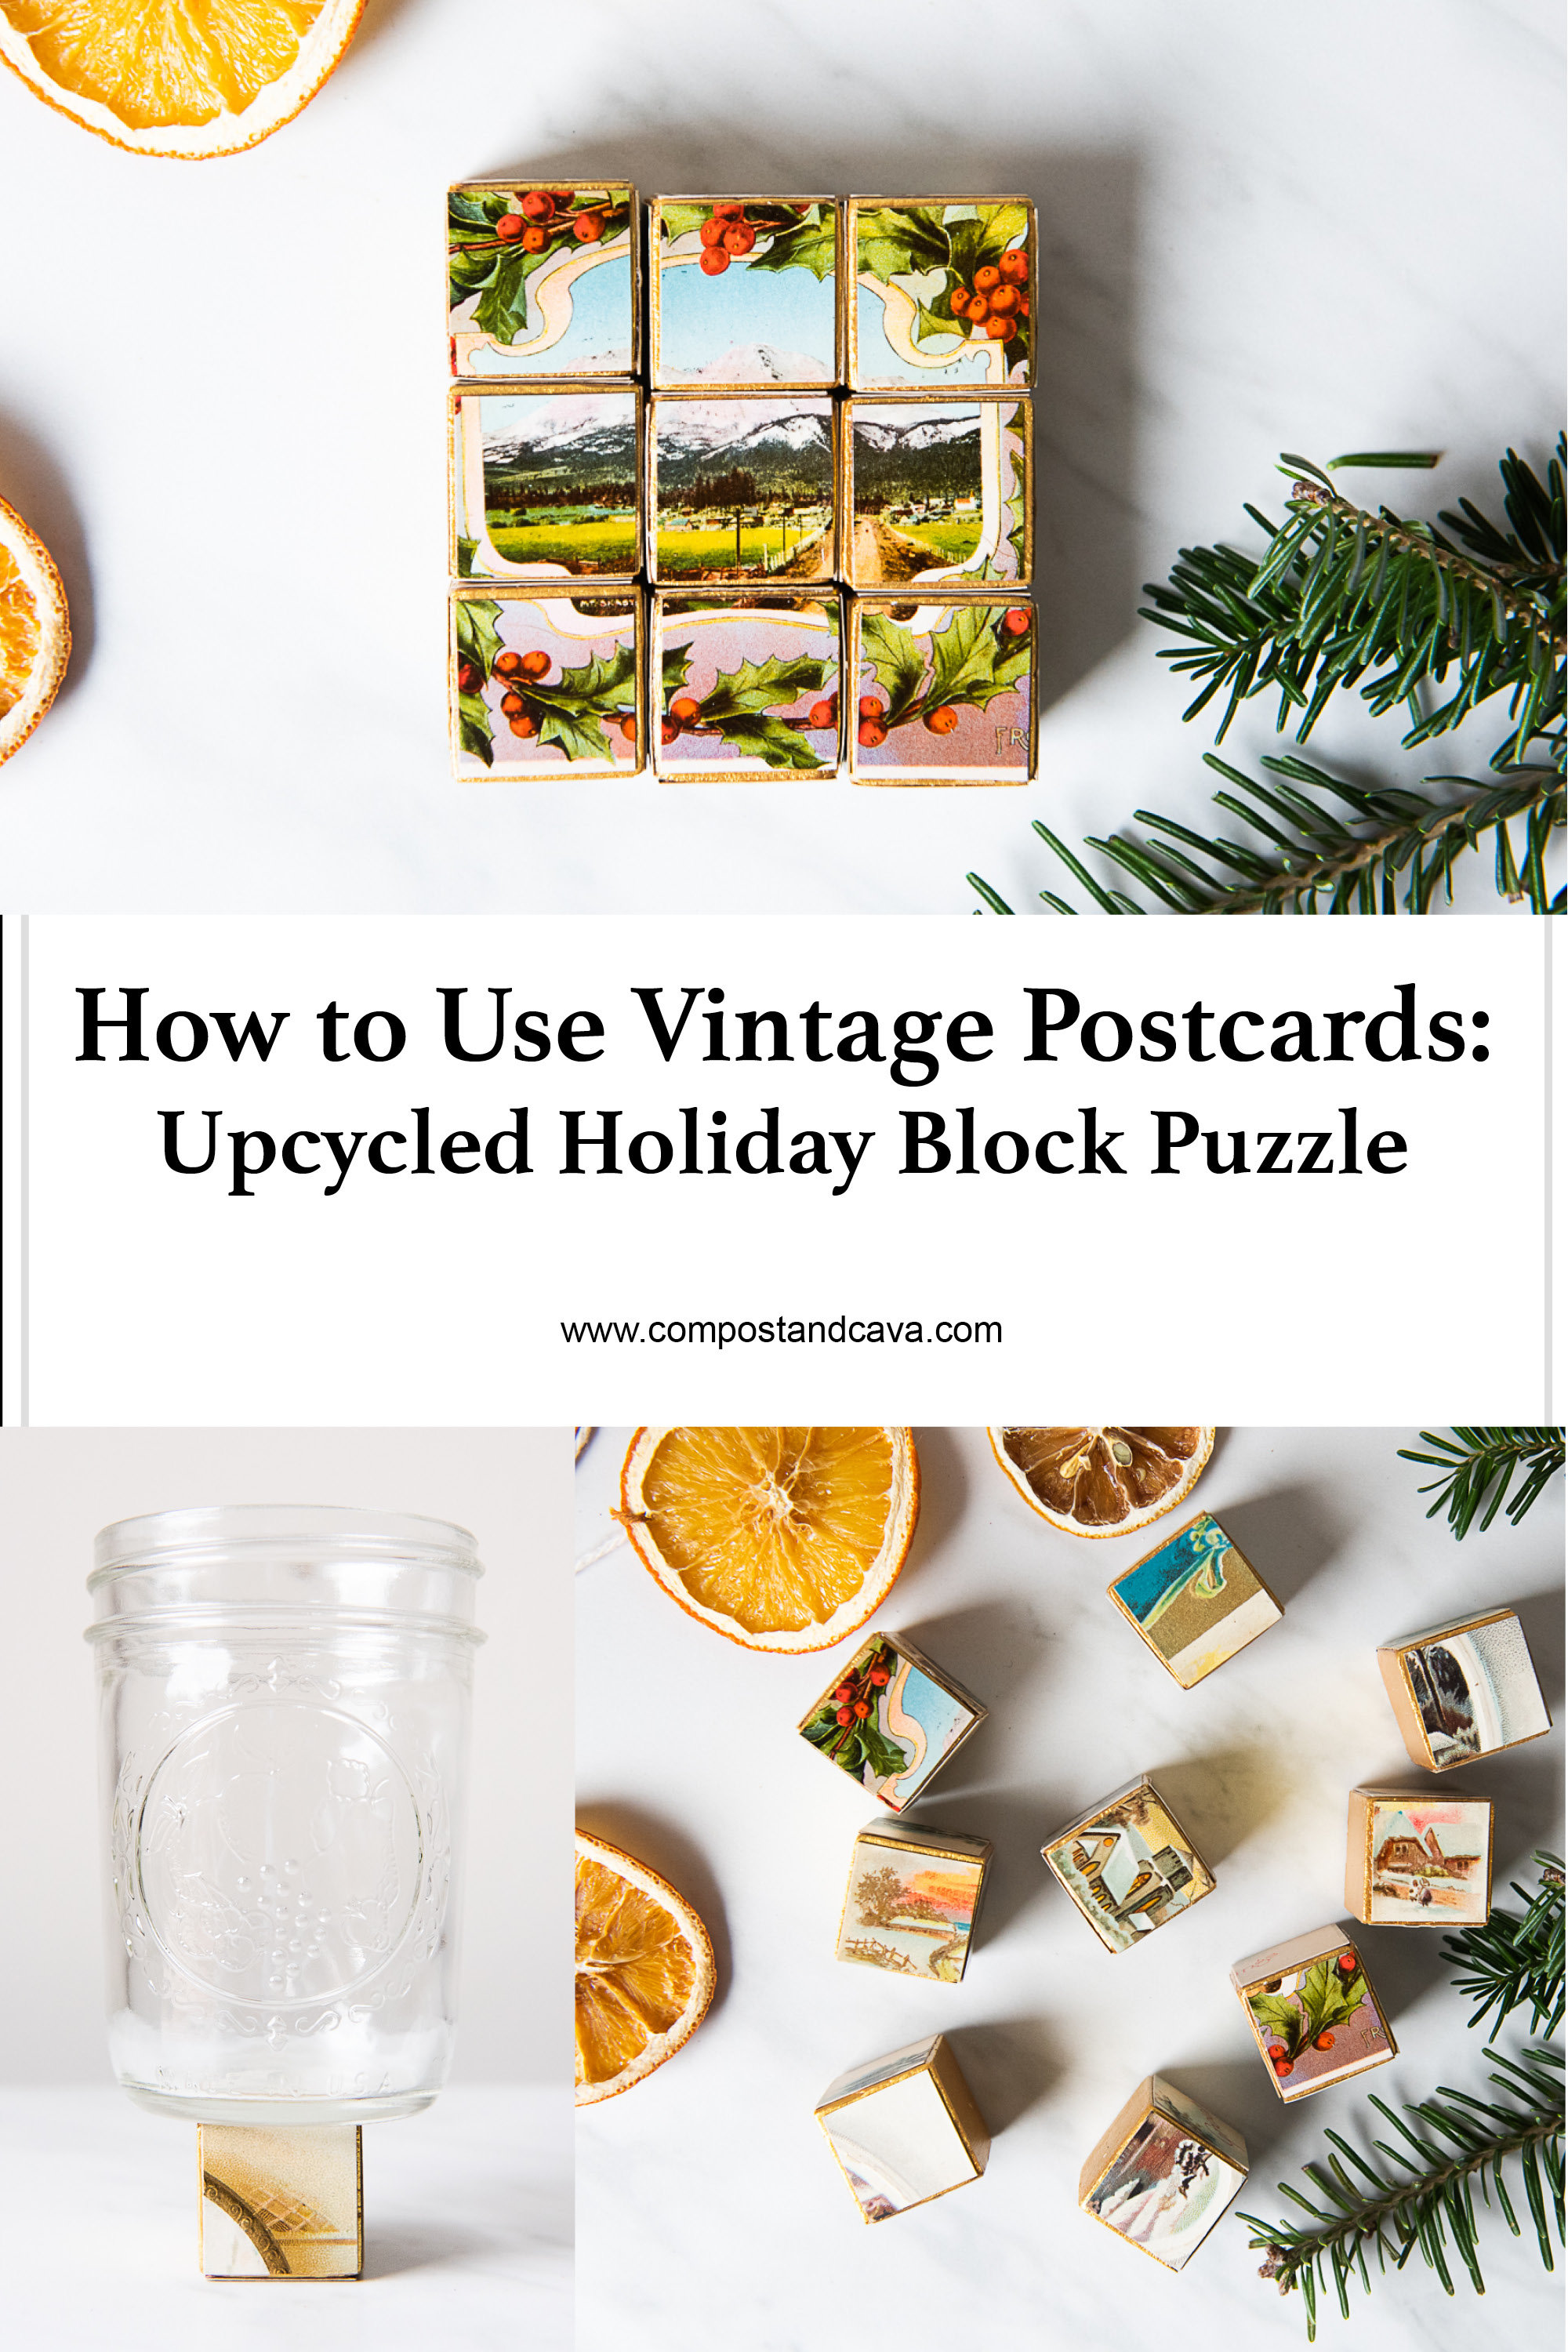 DIY Christmas Block Puzzle Made From Upcycled Vintage Postcards